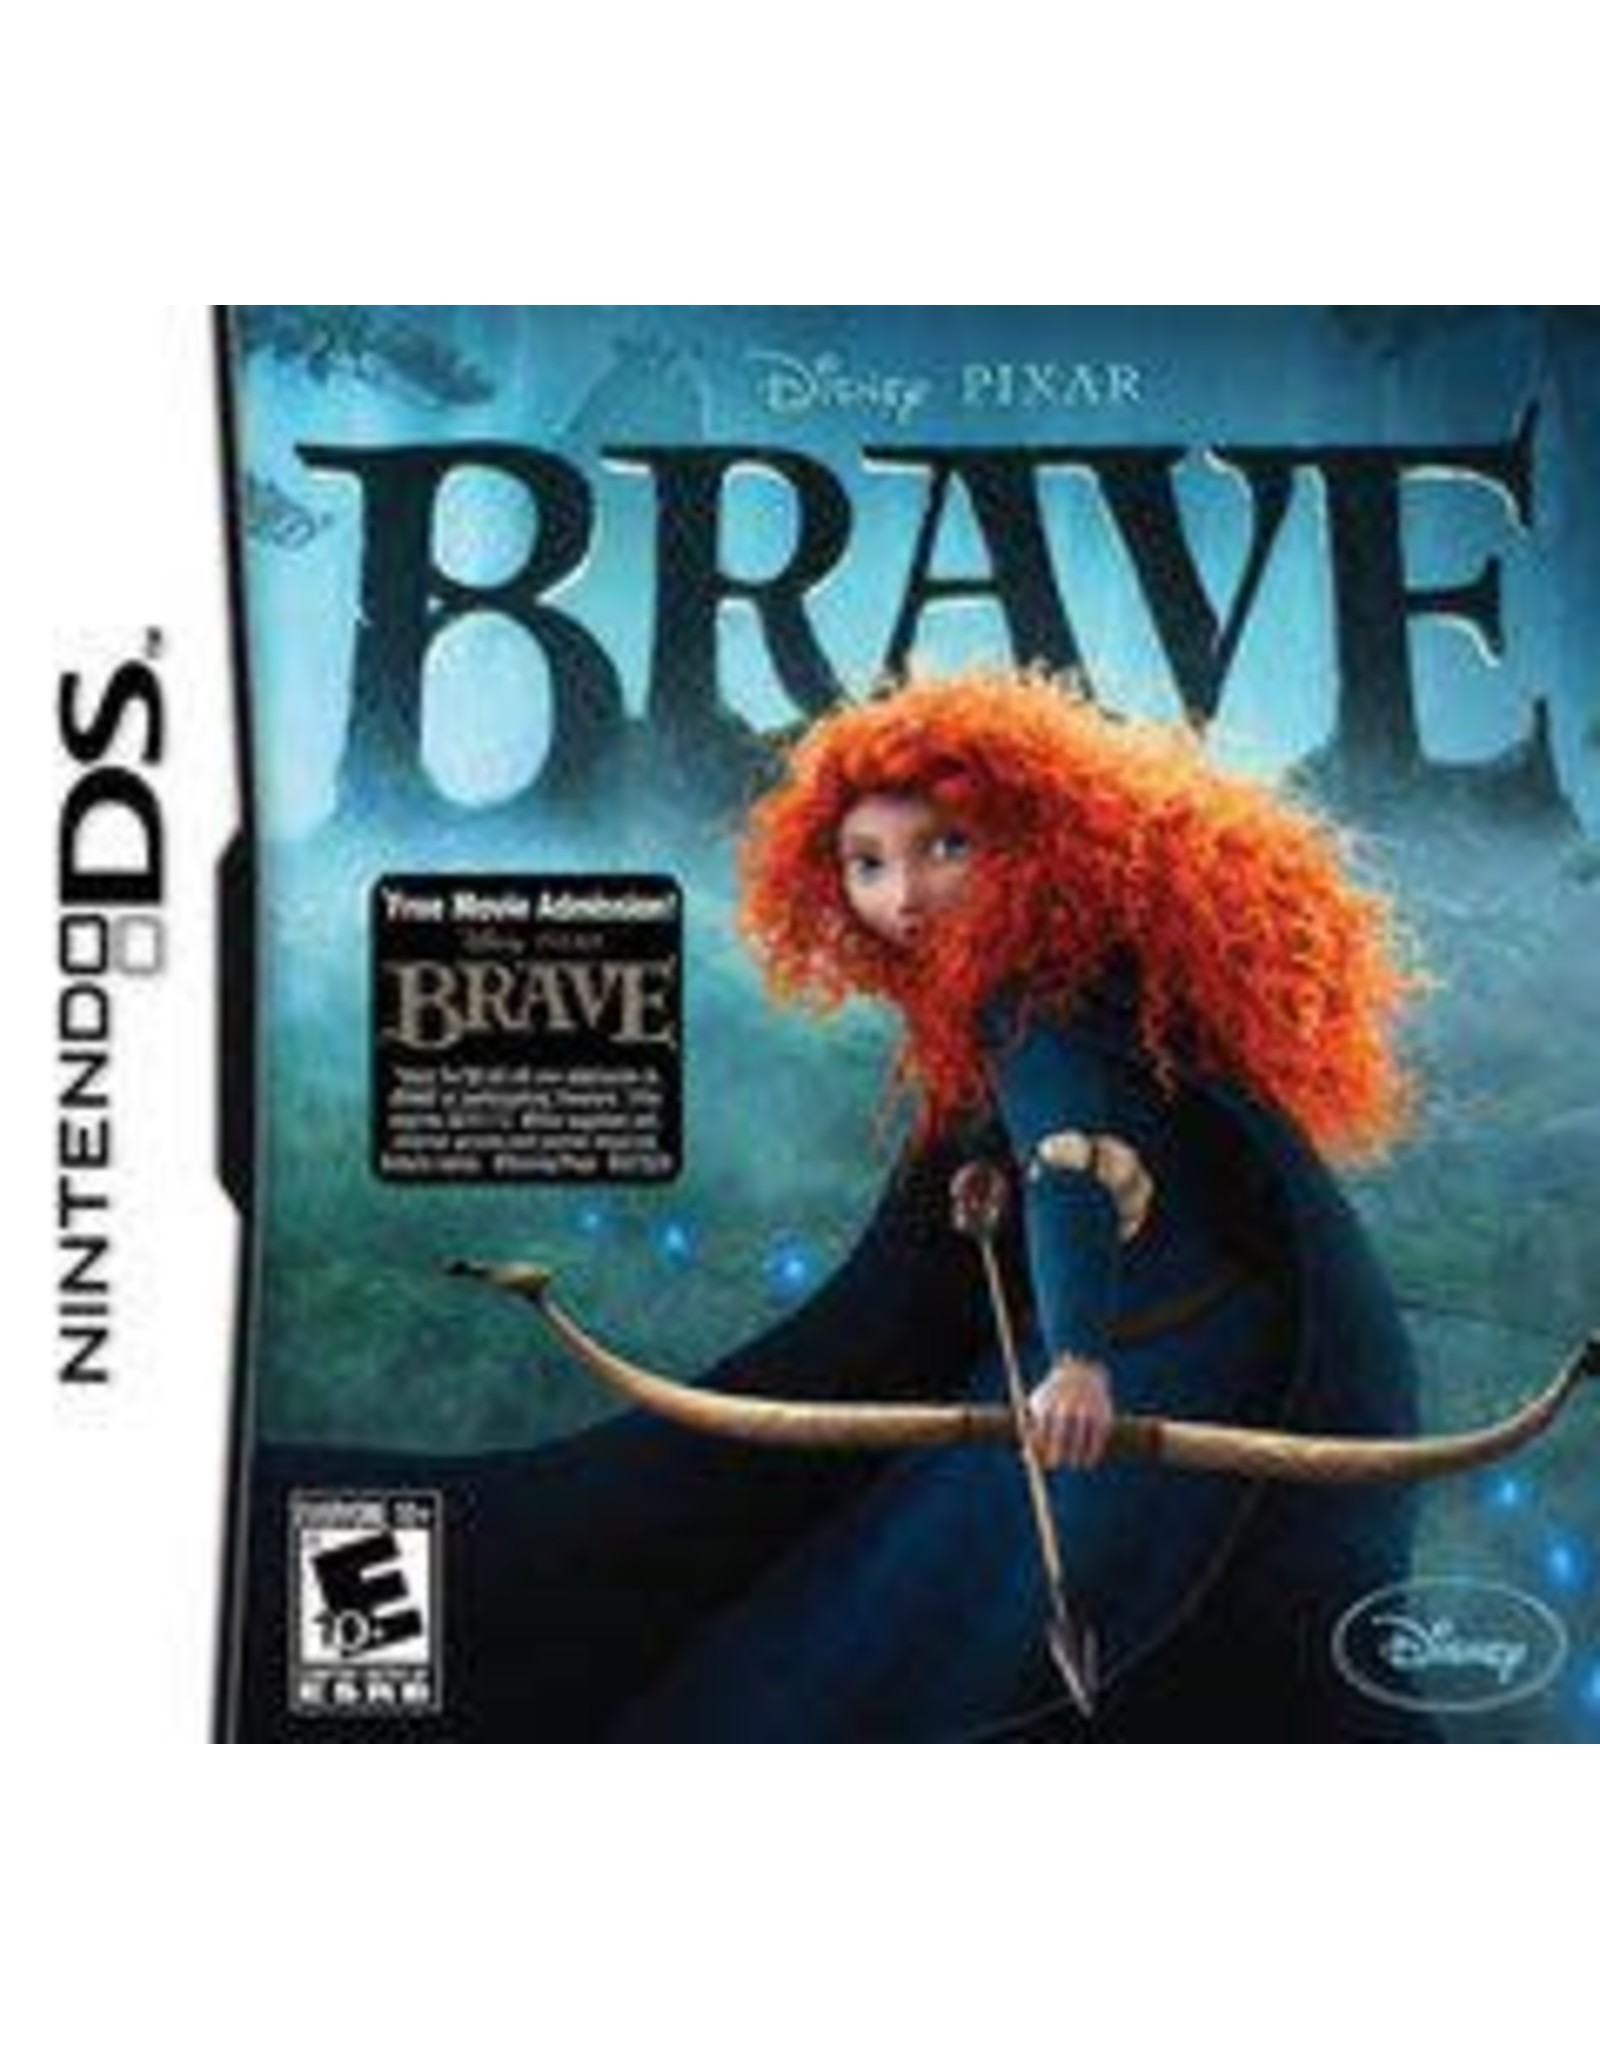 Nintendo DS Brave The Video Game (Cart Only)